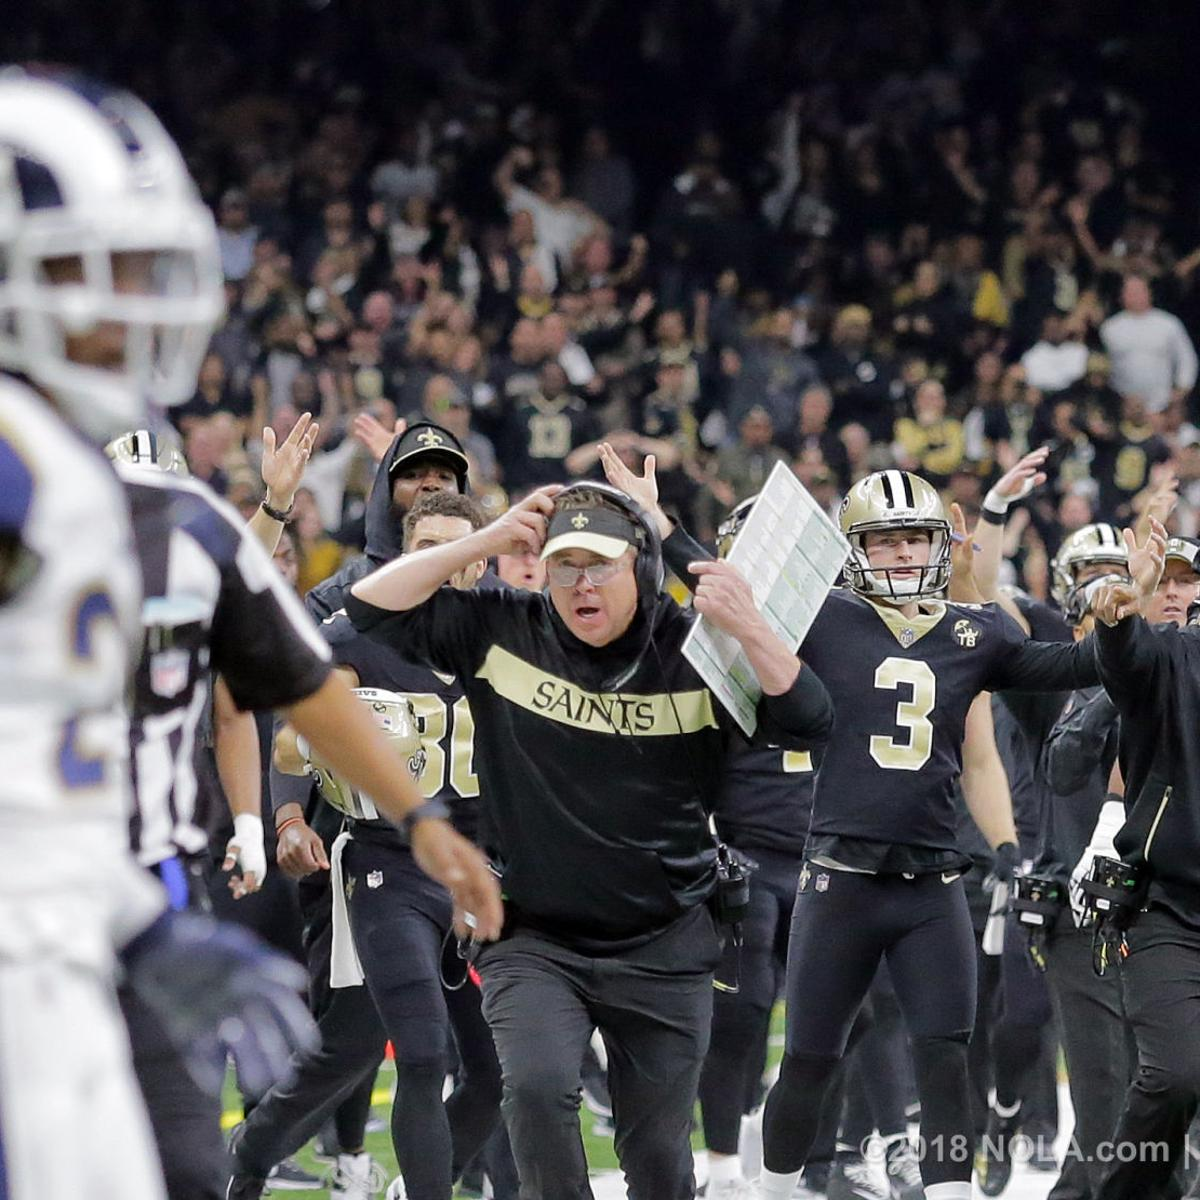 Saints Sean Payton In Aftermath Of Loss Find The Will To